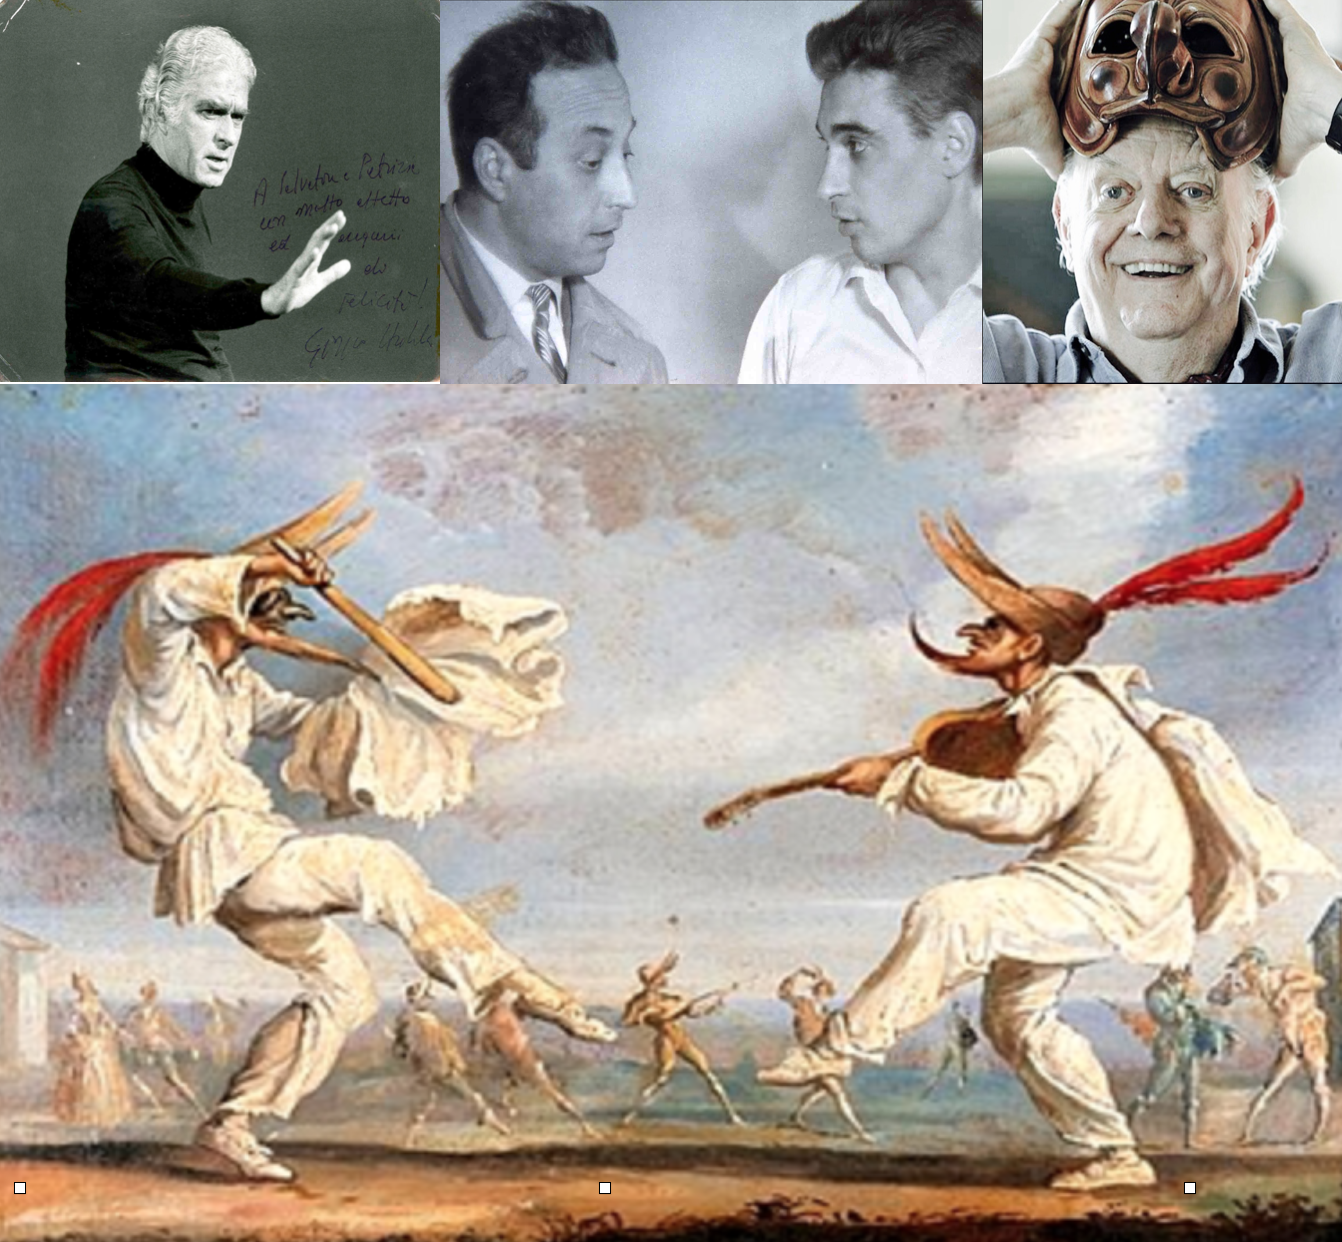 Amleto Sartori, Jacques Lecoq, Giorgio Strehler, Dario Fo.  Commedia dell'arte  (the art of improvisation) originates in Italy and was popular in all of Europe from the 16th to the 18th century.